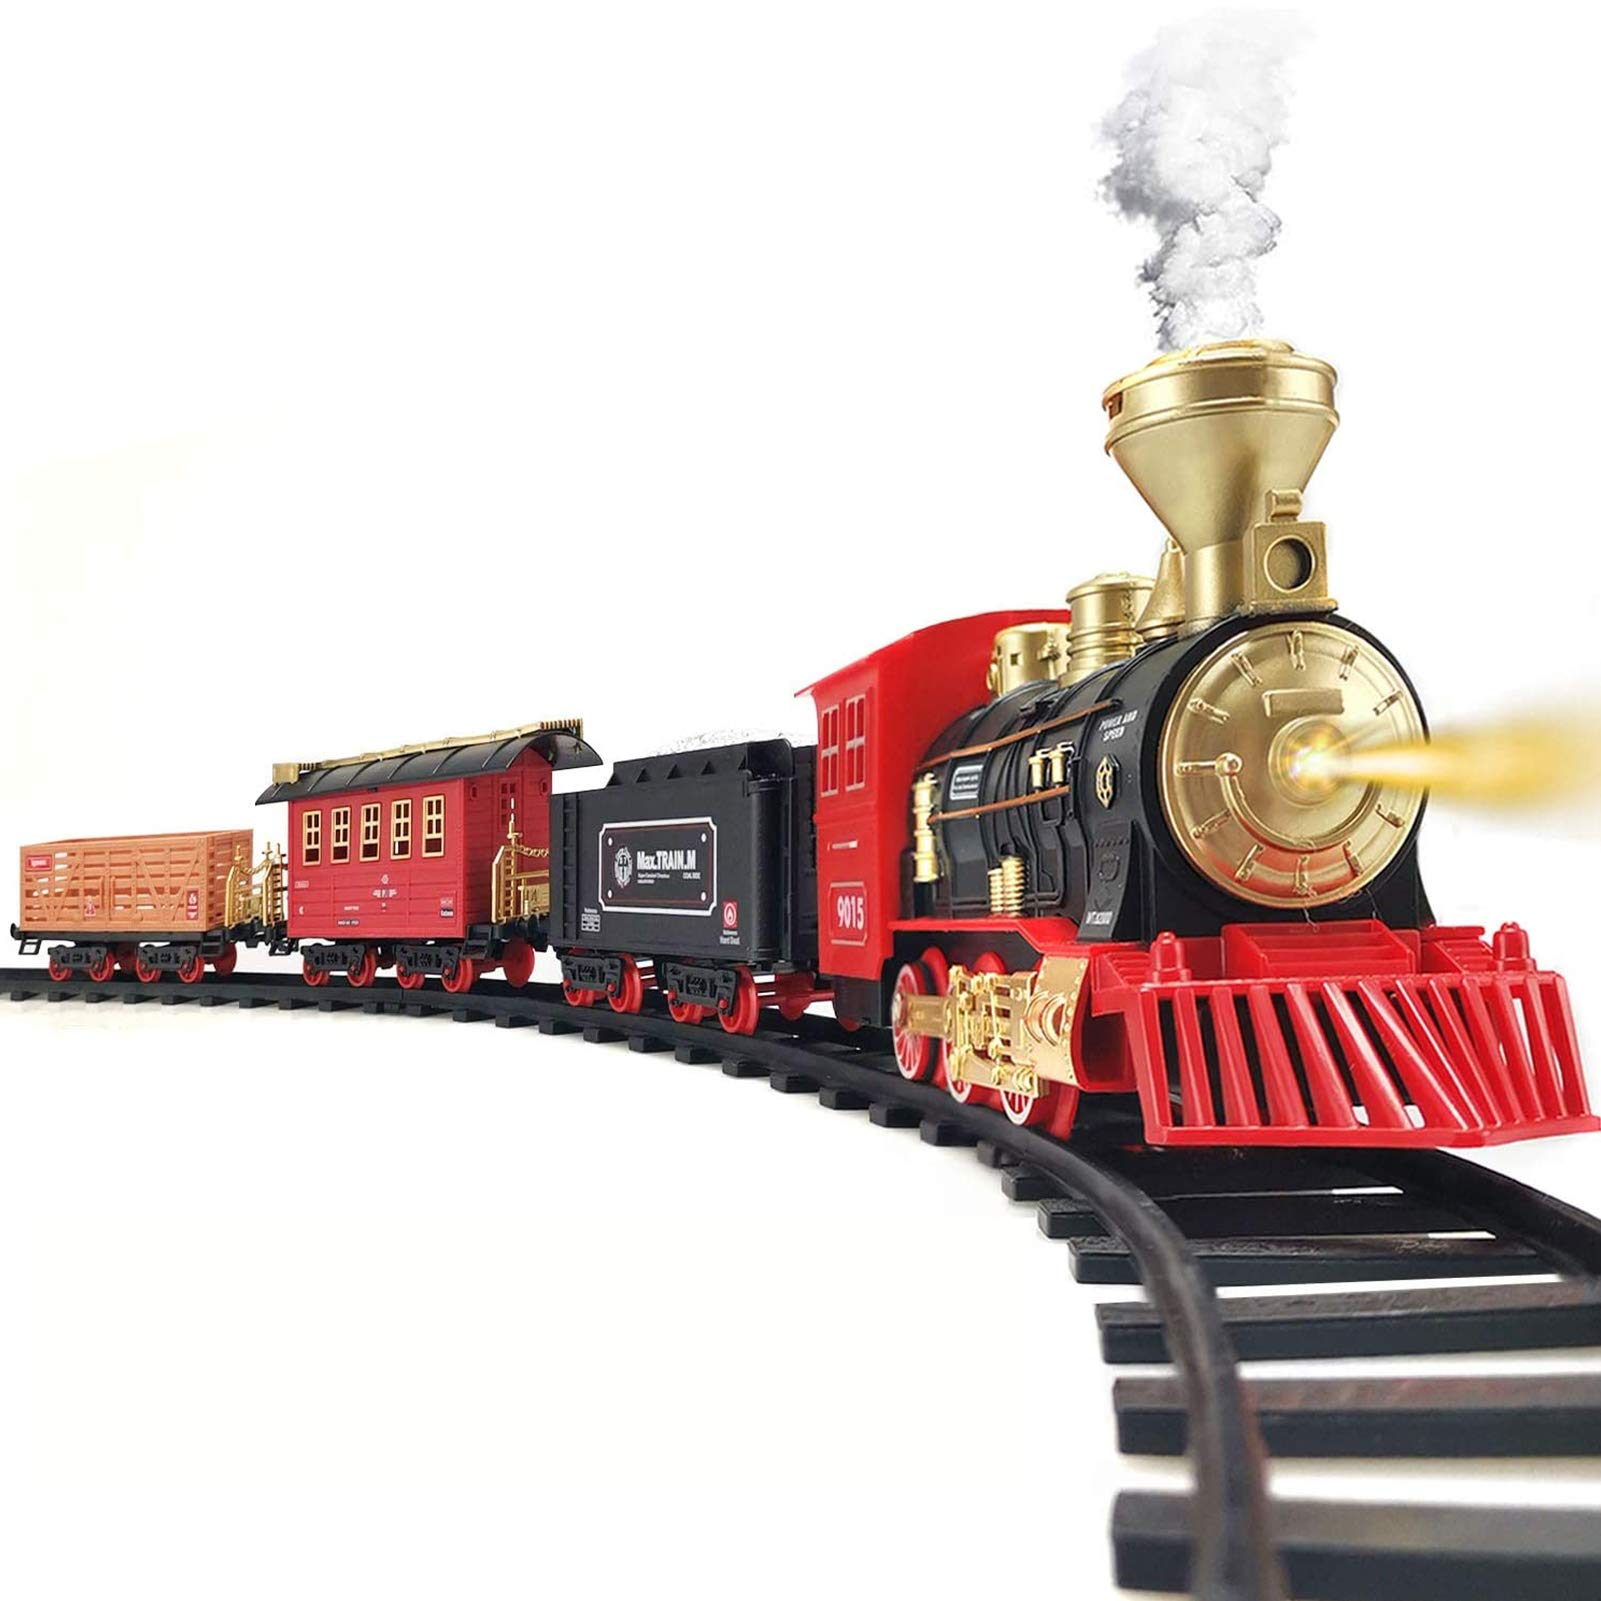 Train Set - Electric Train Toy for Boys Girls w/ Smokes, Lights & Sound, Railway Kits w/ Steam Locomotive Engine, Cargo Cars & Tracks, Christmas Gifts for 3 4 5 6 7 8+ year old Kids